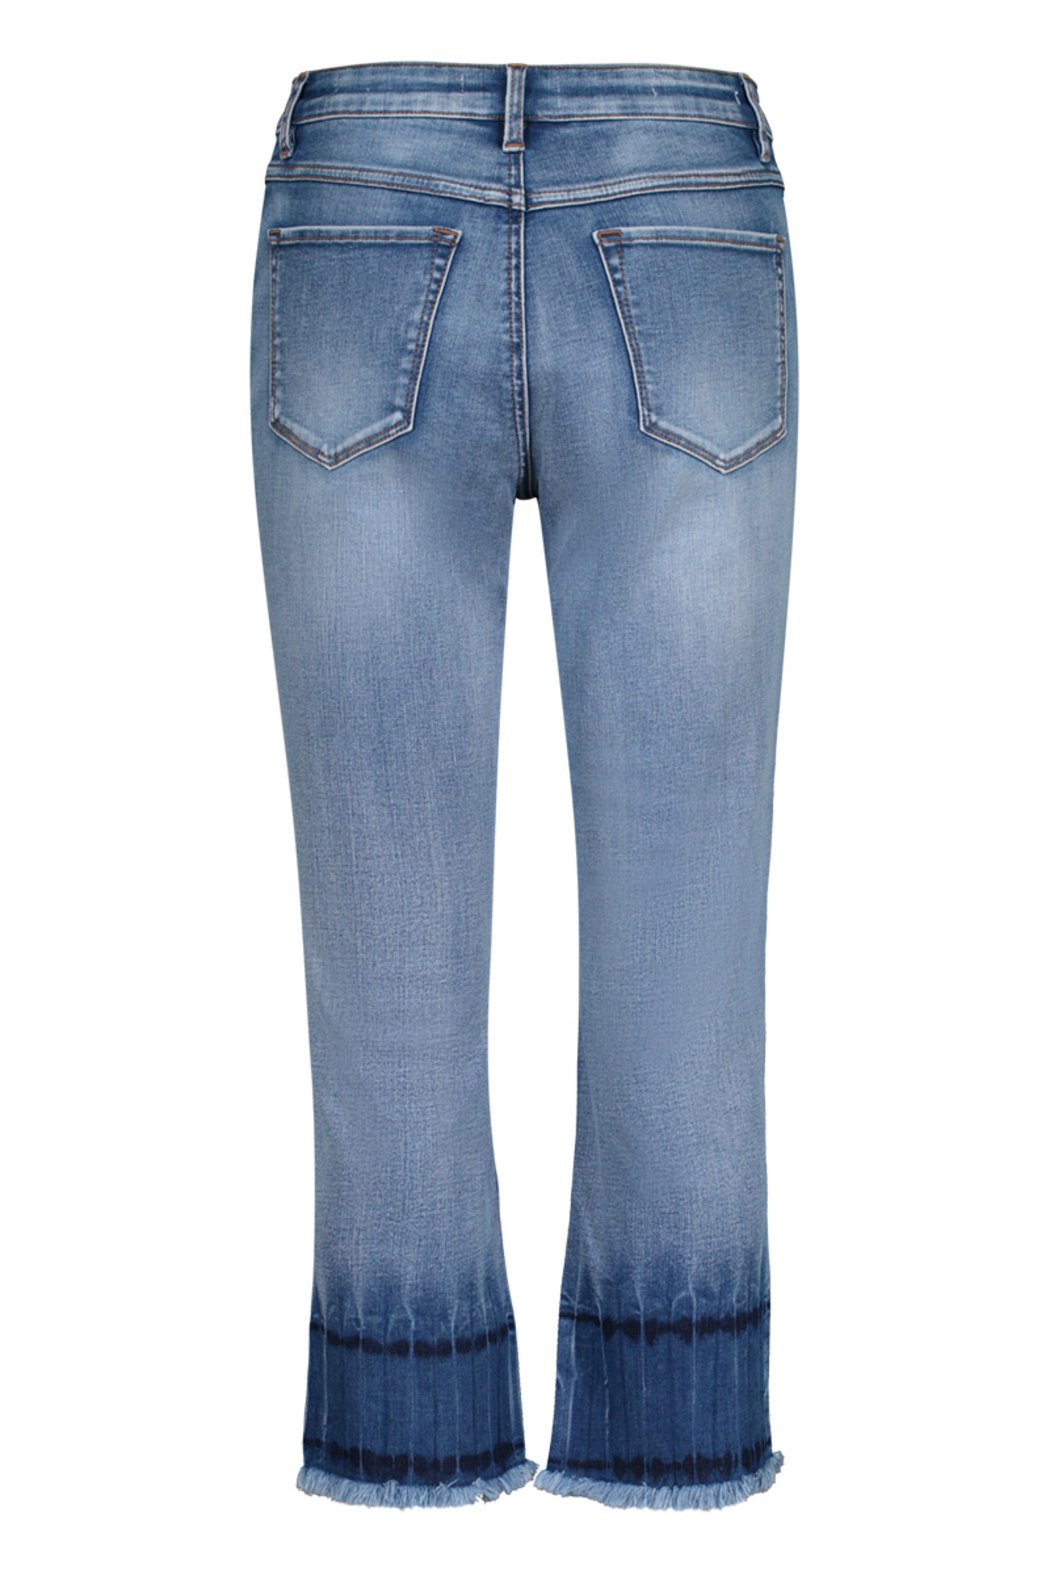 Tribal Jeans Blue Glow Ankle Jeans - Front Full Image